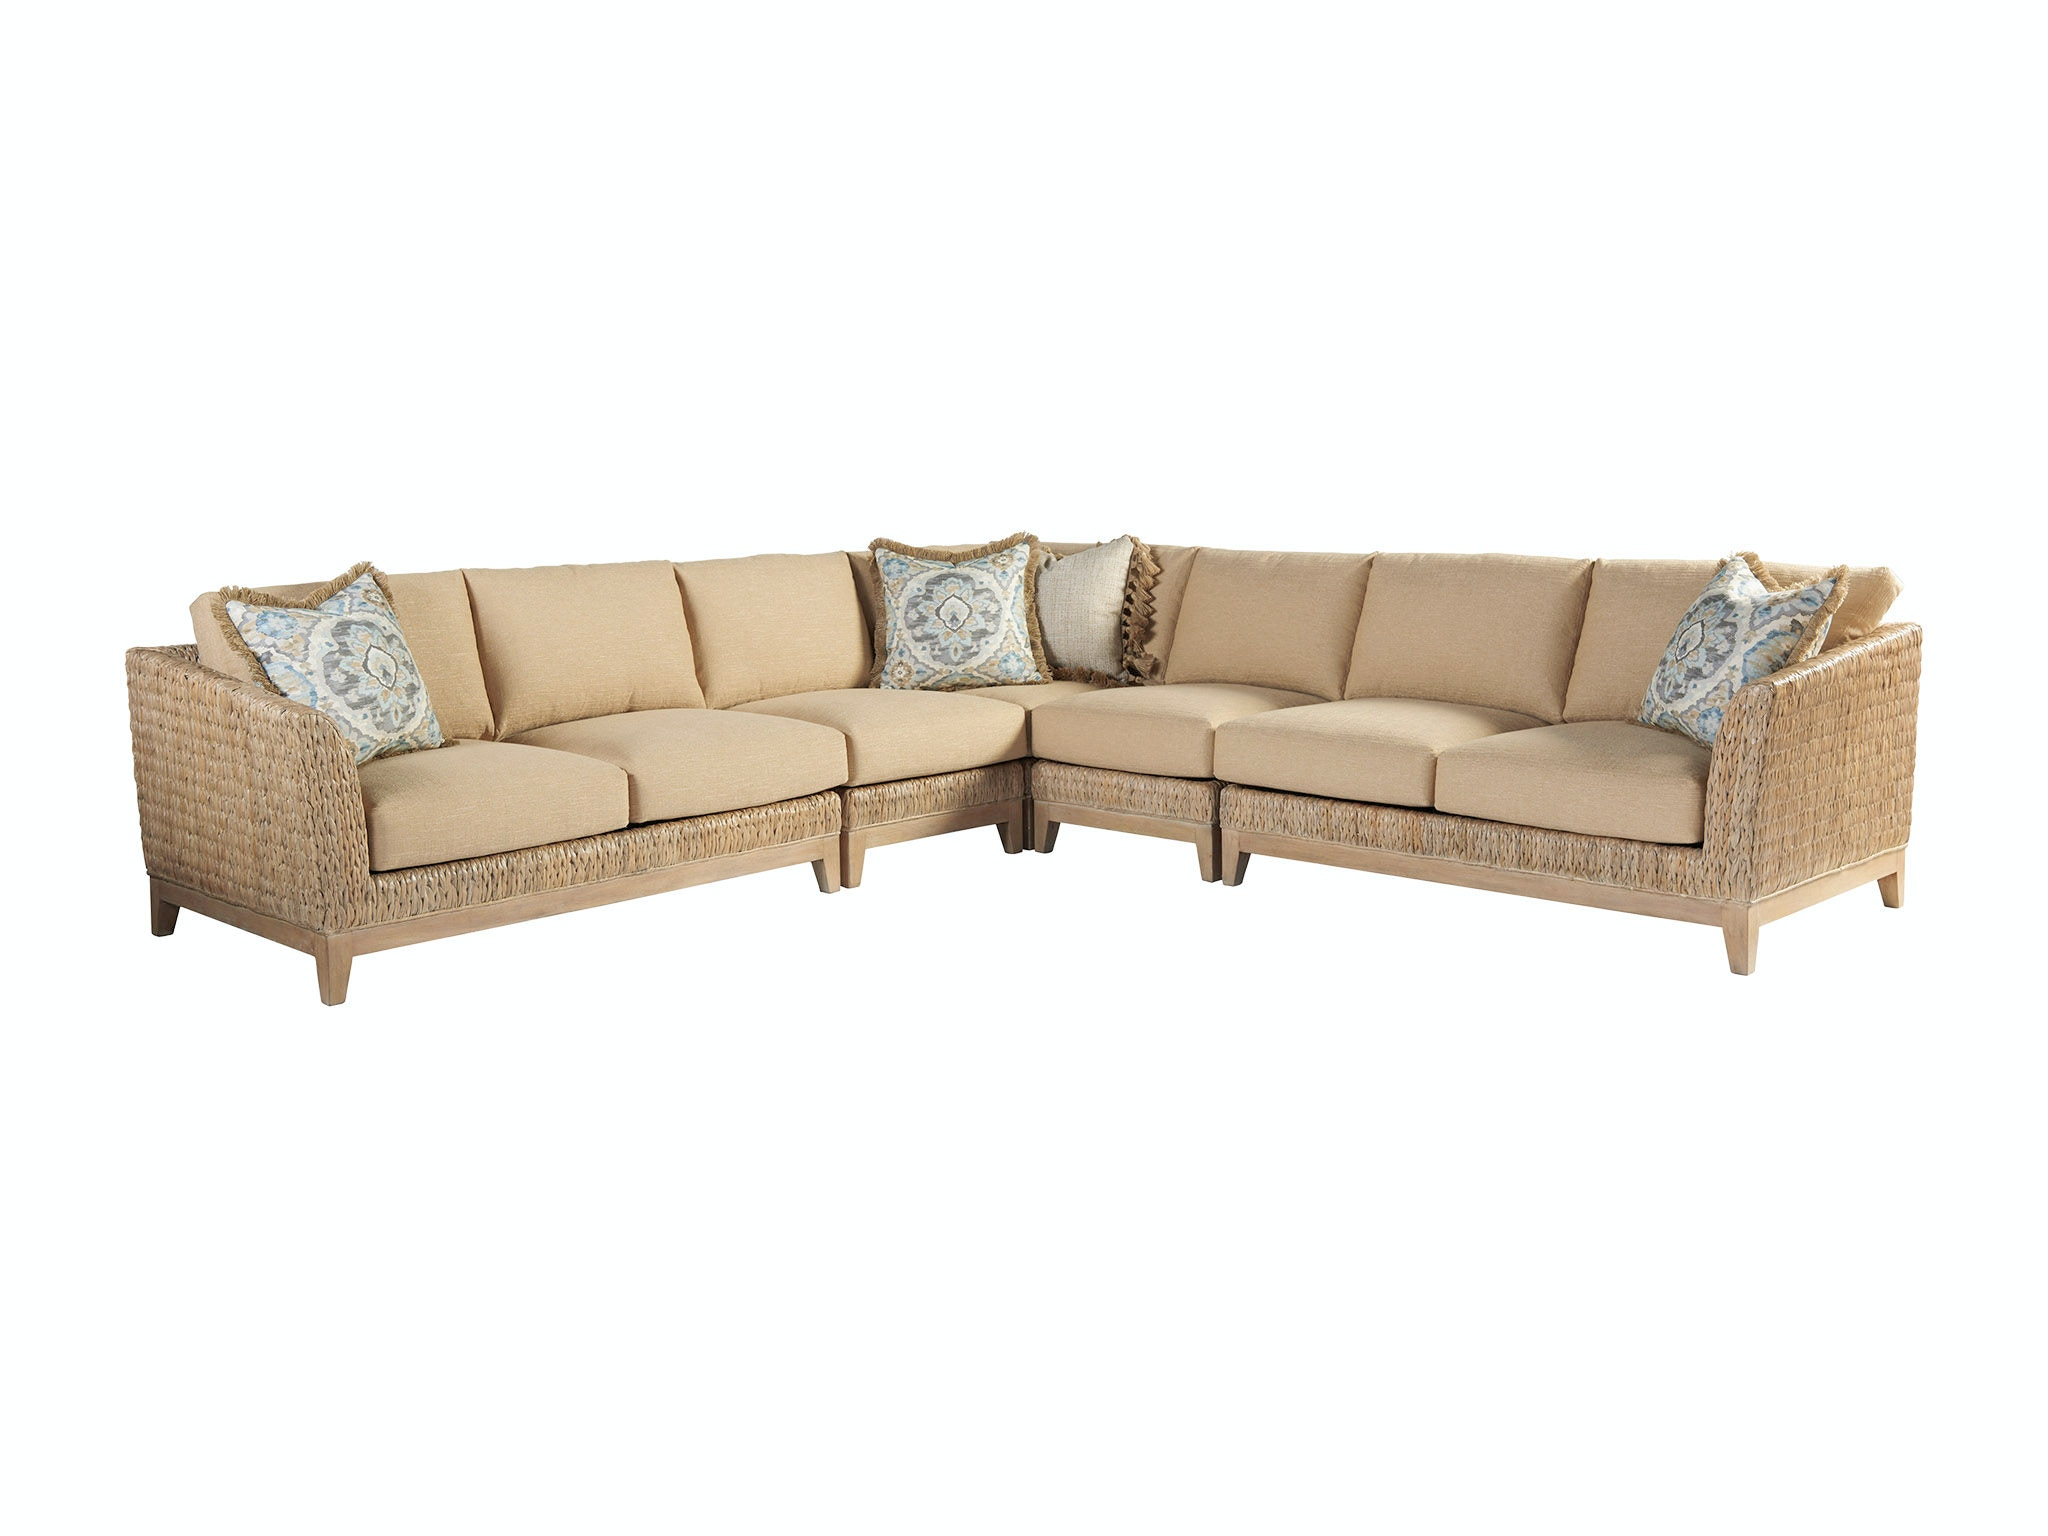 tommy bahama living room color ideas 2018 home brisbane sectional 1838